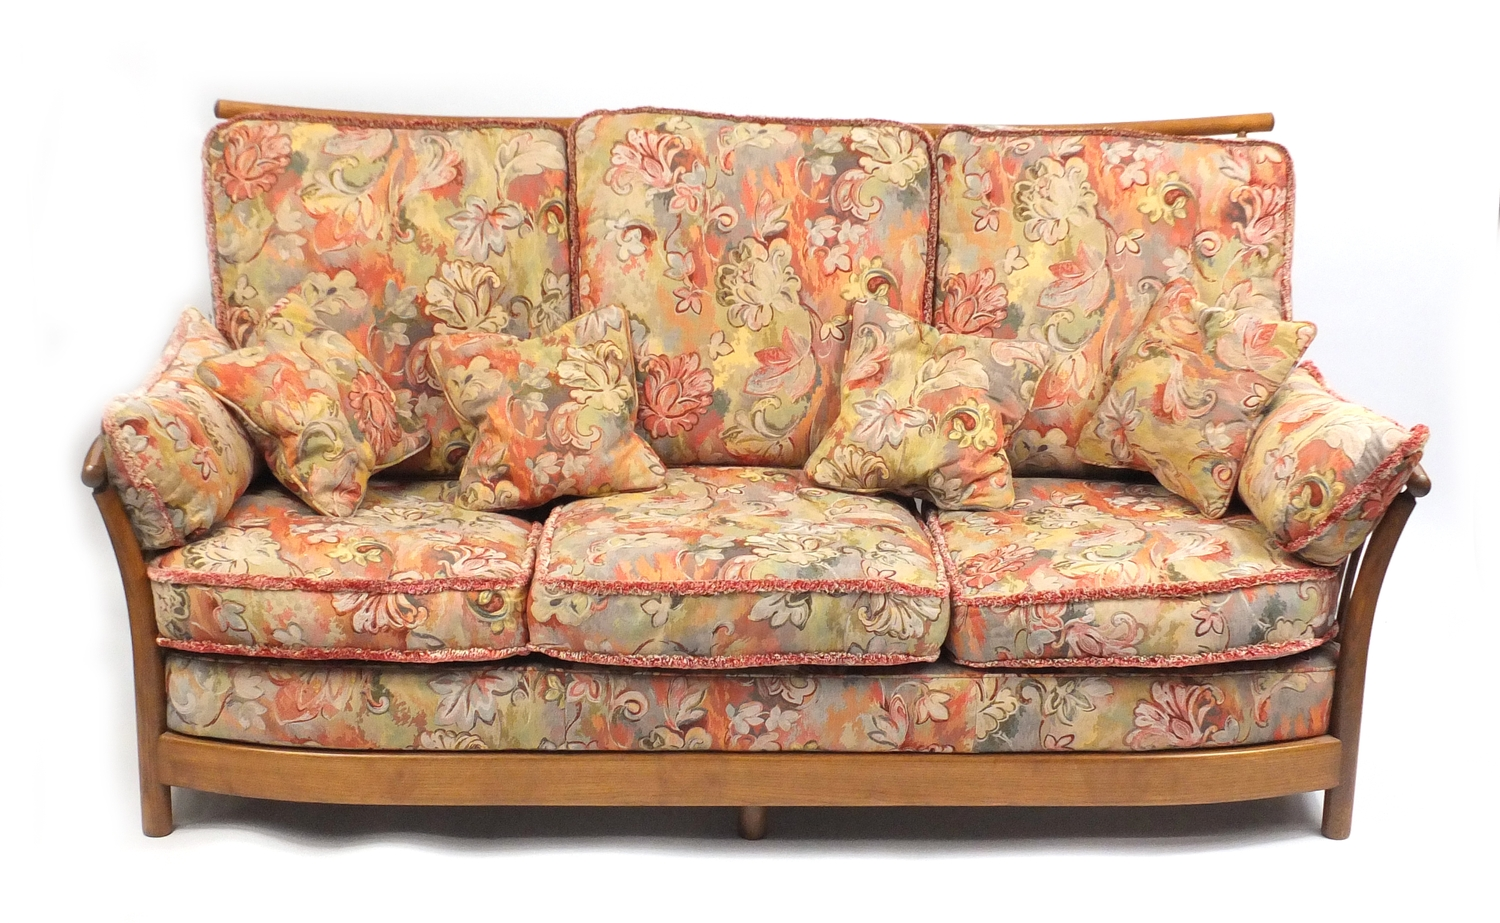 Sofa Bed Eastbourne Eastbourne Auctions Auctioneers Valuers Of Antiques